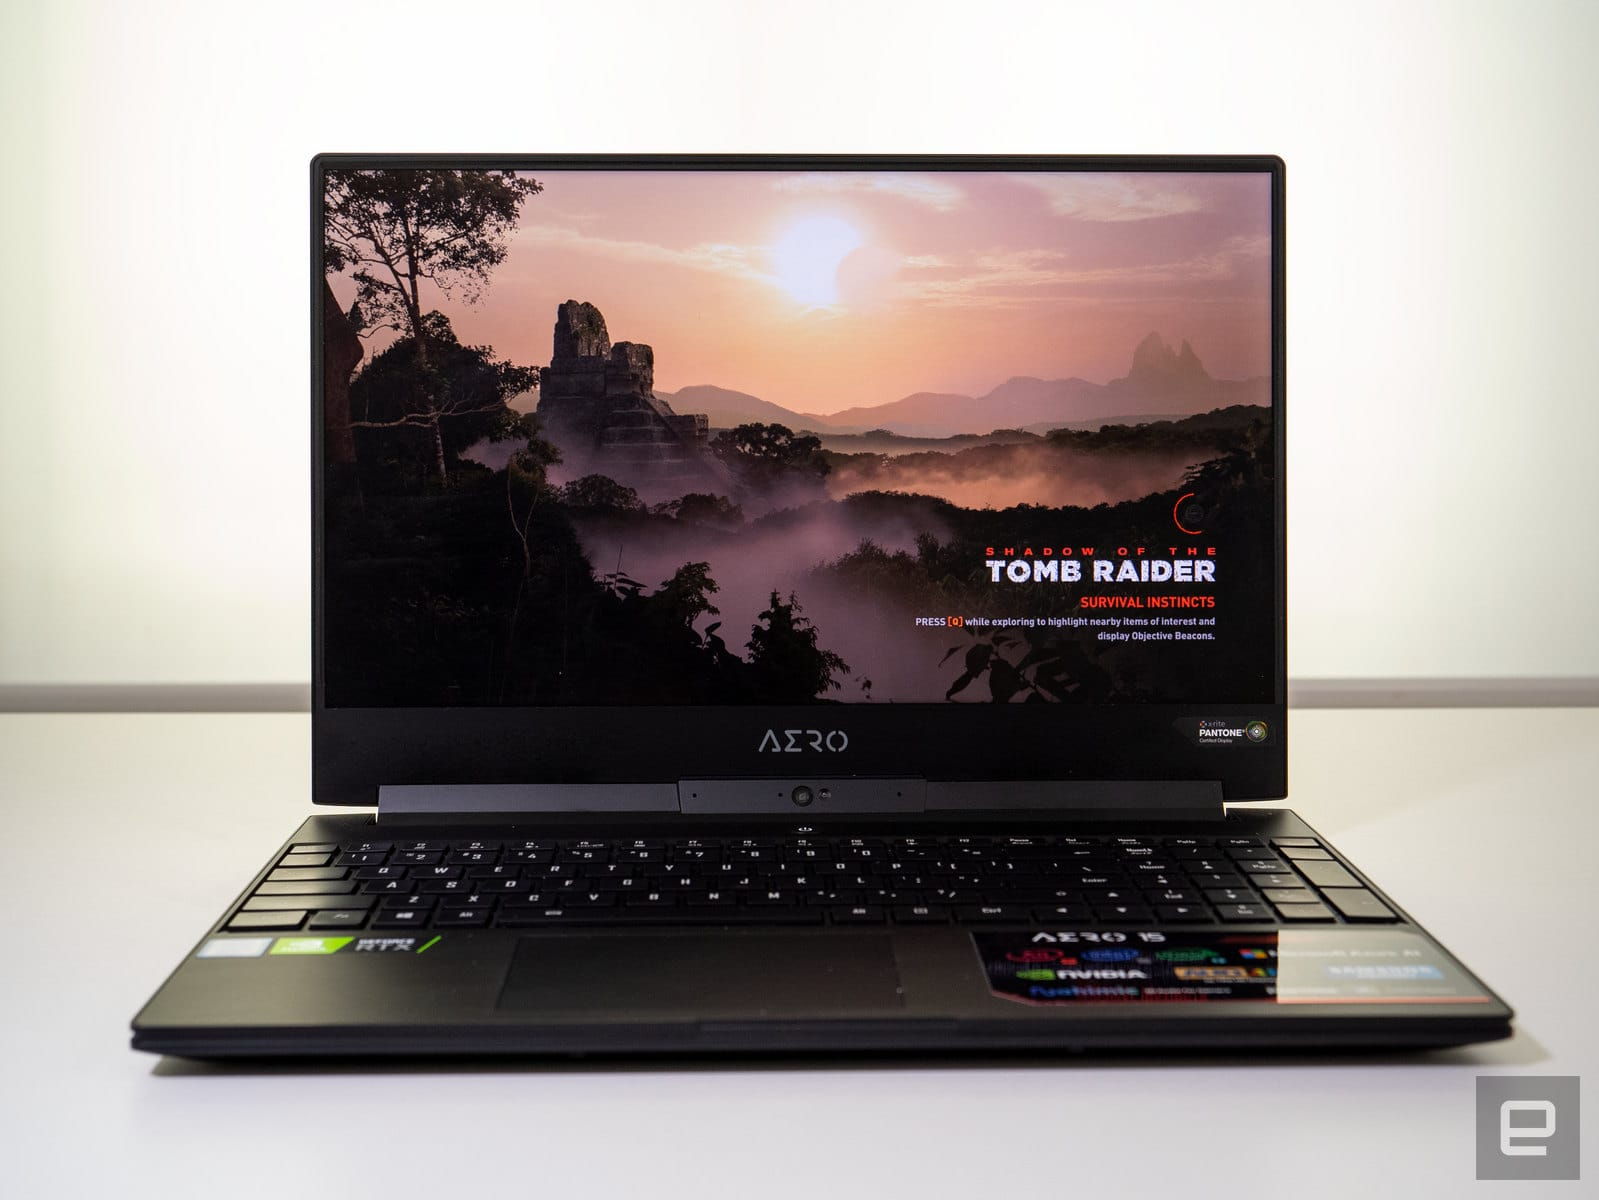 Gigabyte Aero 15 Y9 gaming laptop with NVIDIA RTX 2080 Max-Q graphics